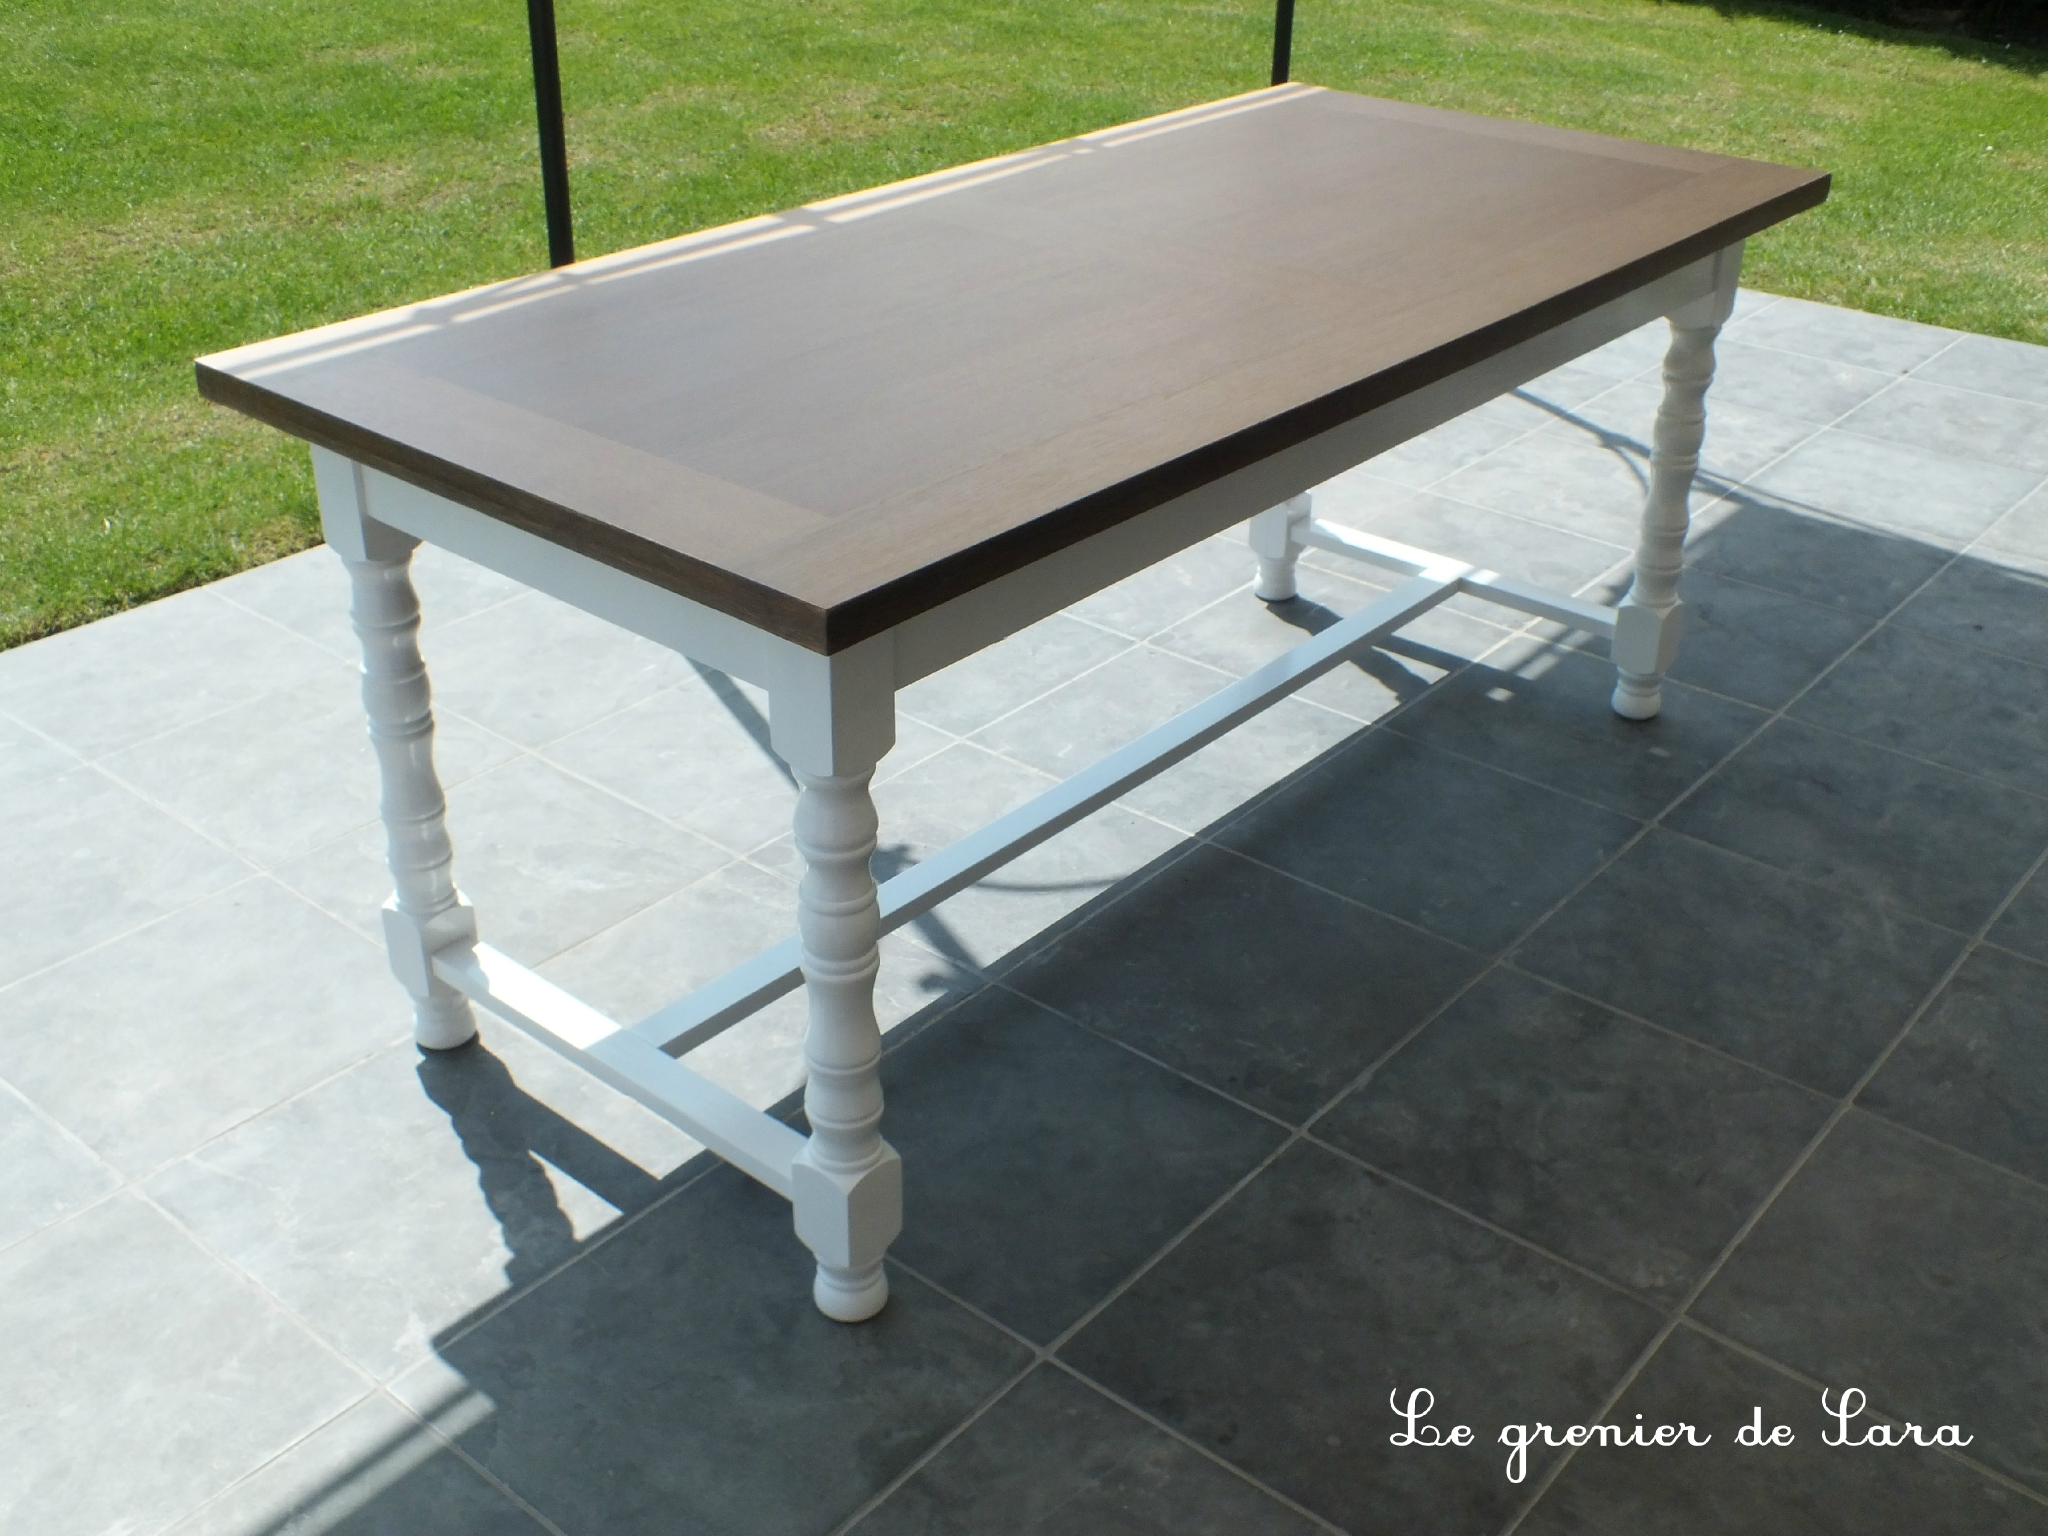 Table patin e broc et patine le grenier de sara - Relooker table en bois ...